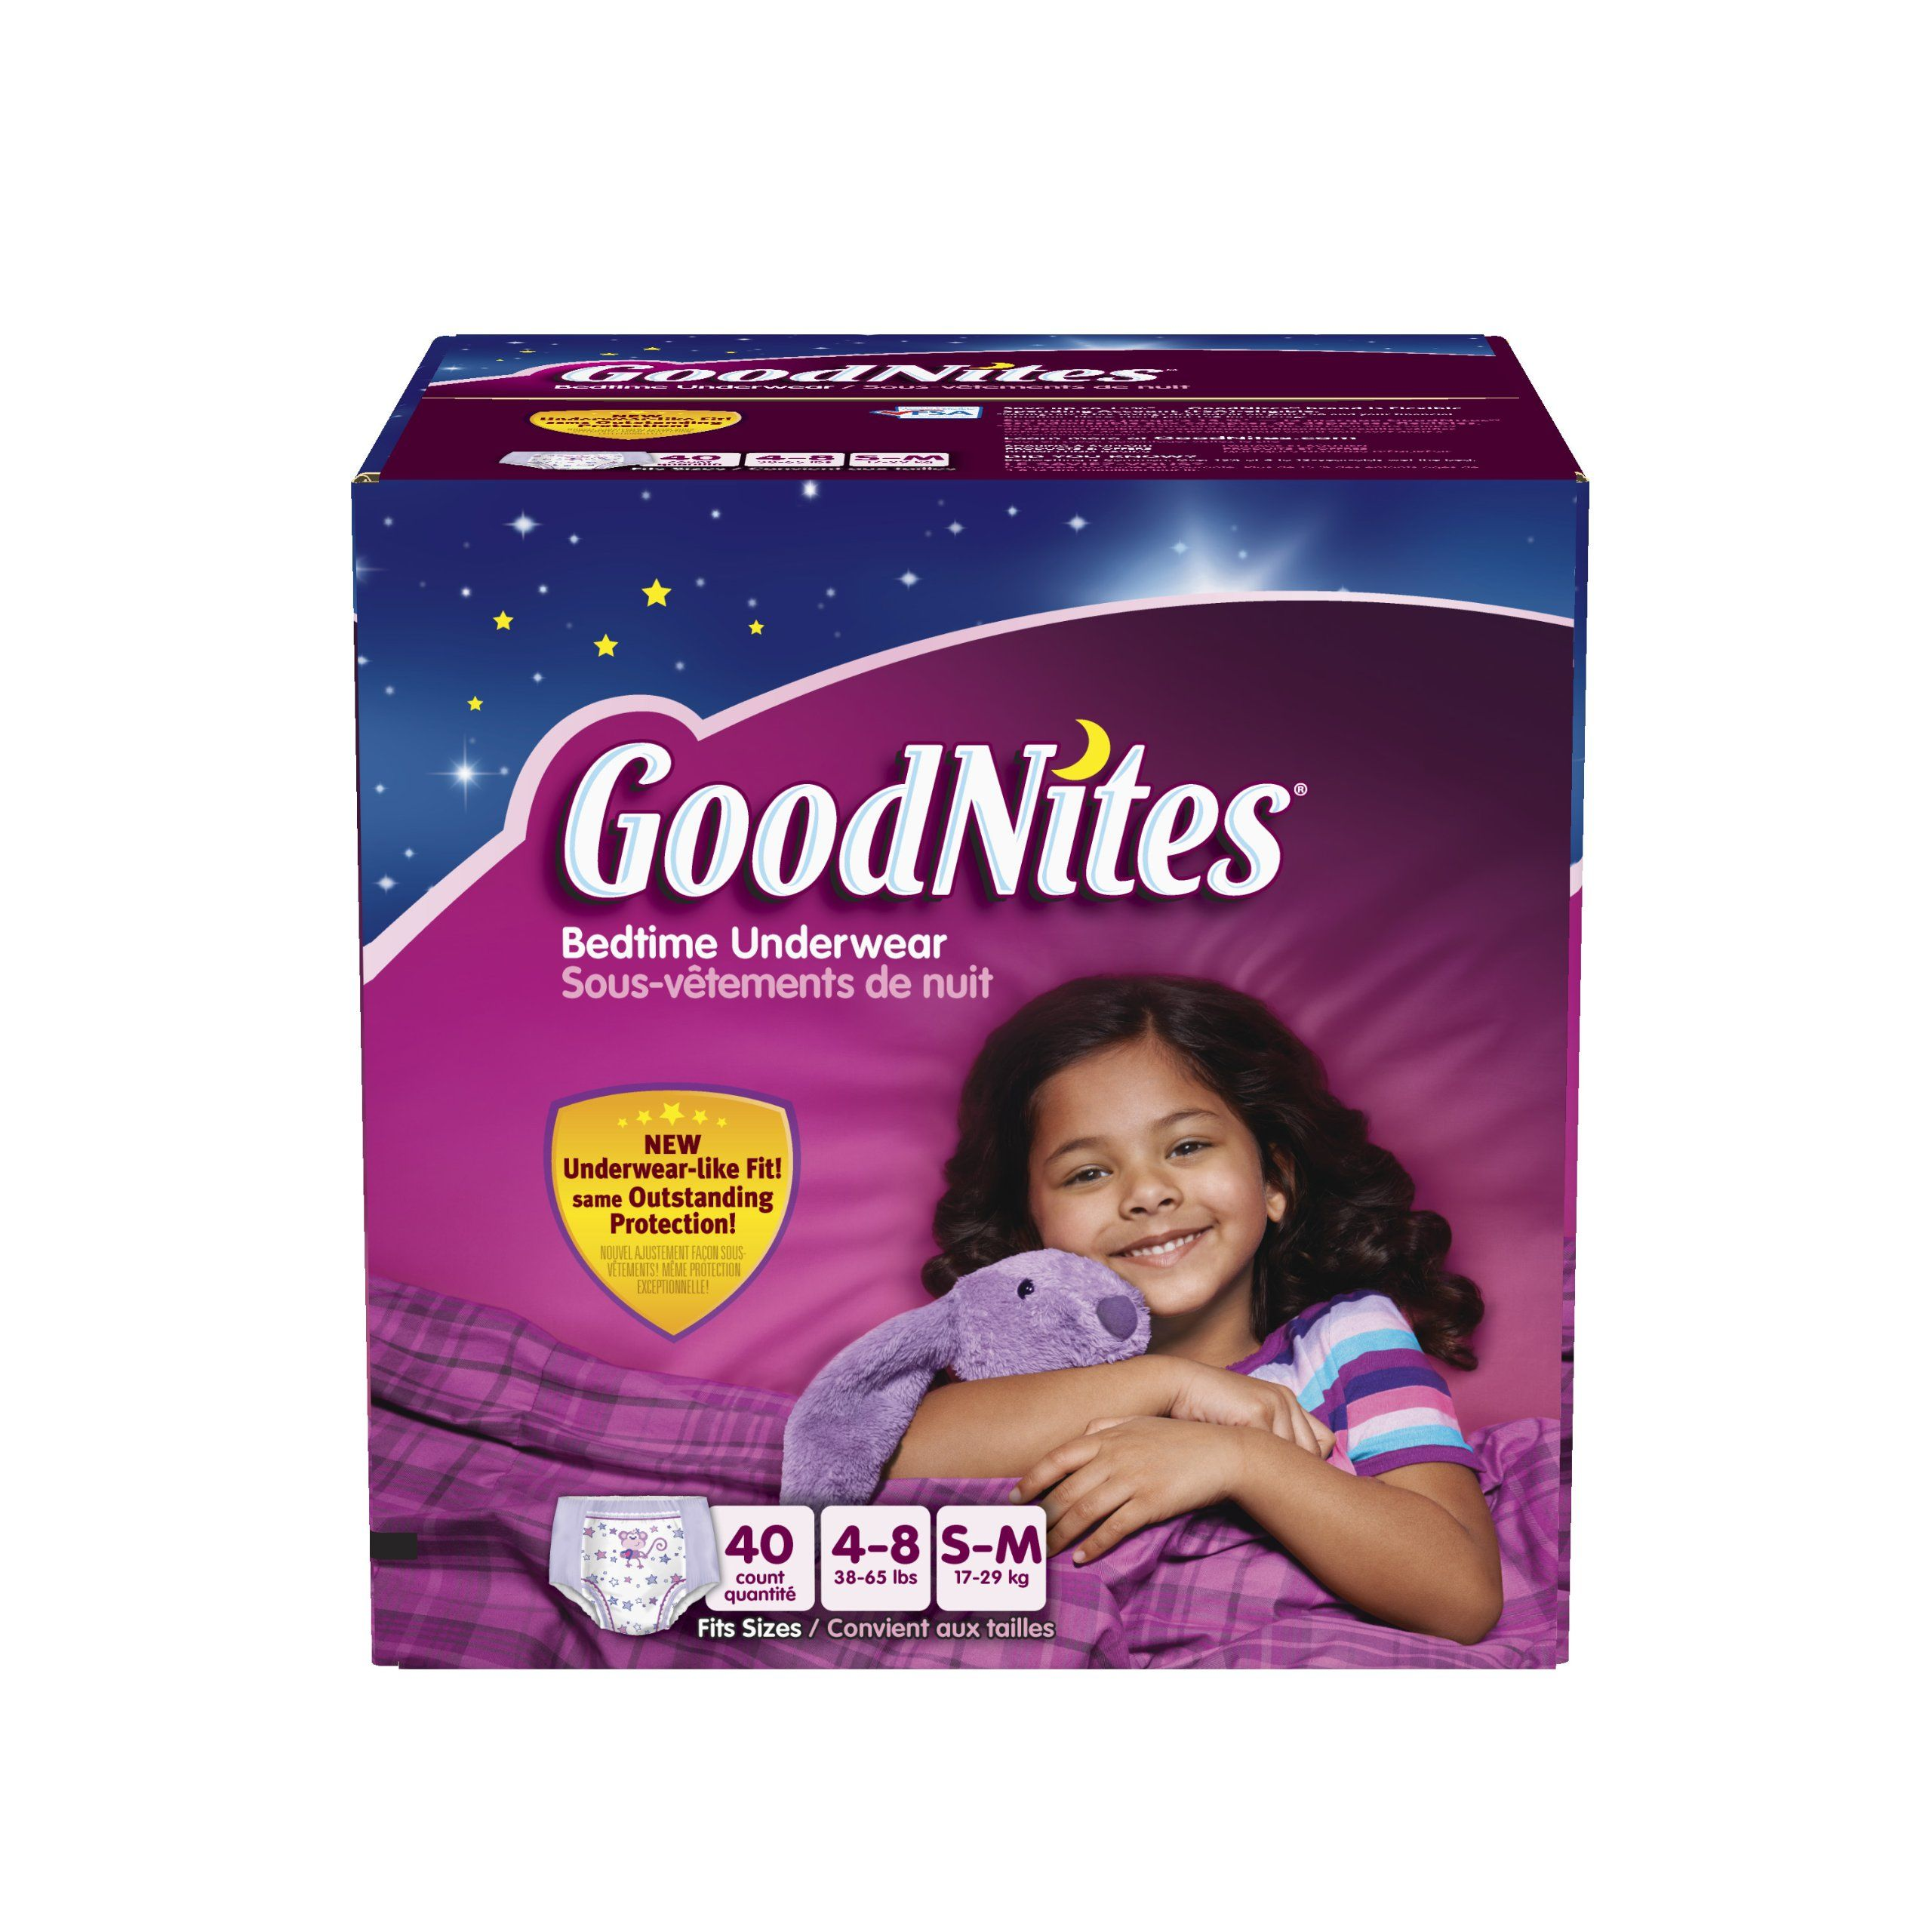 GoodNites Bedtime Pants for Girls, Small/Medium, 40 count. GoodNites Bedtime Pants fits girls from 38 to 65 lbs (Clothing Sizes 4-8). Eligible for FSA (Flexible Spending Account) purchase. GoodNites Bedtime Pants are 40% more absorbent than training pants; versus the leading brand size 4T/5T training pants. Comfortable feel and underwear-like fit that provides discreet bedwetting protection under pajamas. Cool graphics and designs ? Disney Fairies Tinker Bell character. Free Marvel…